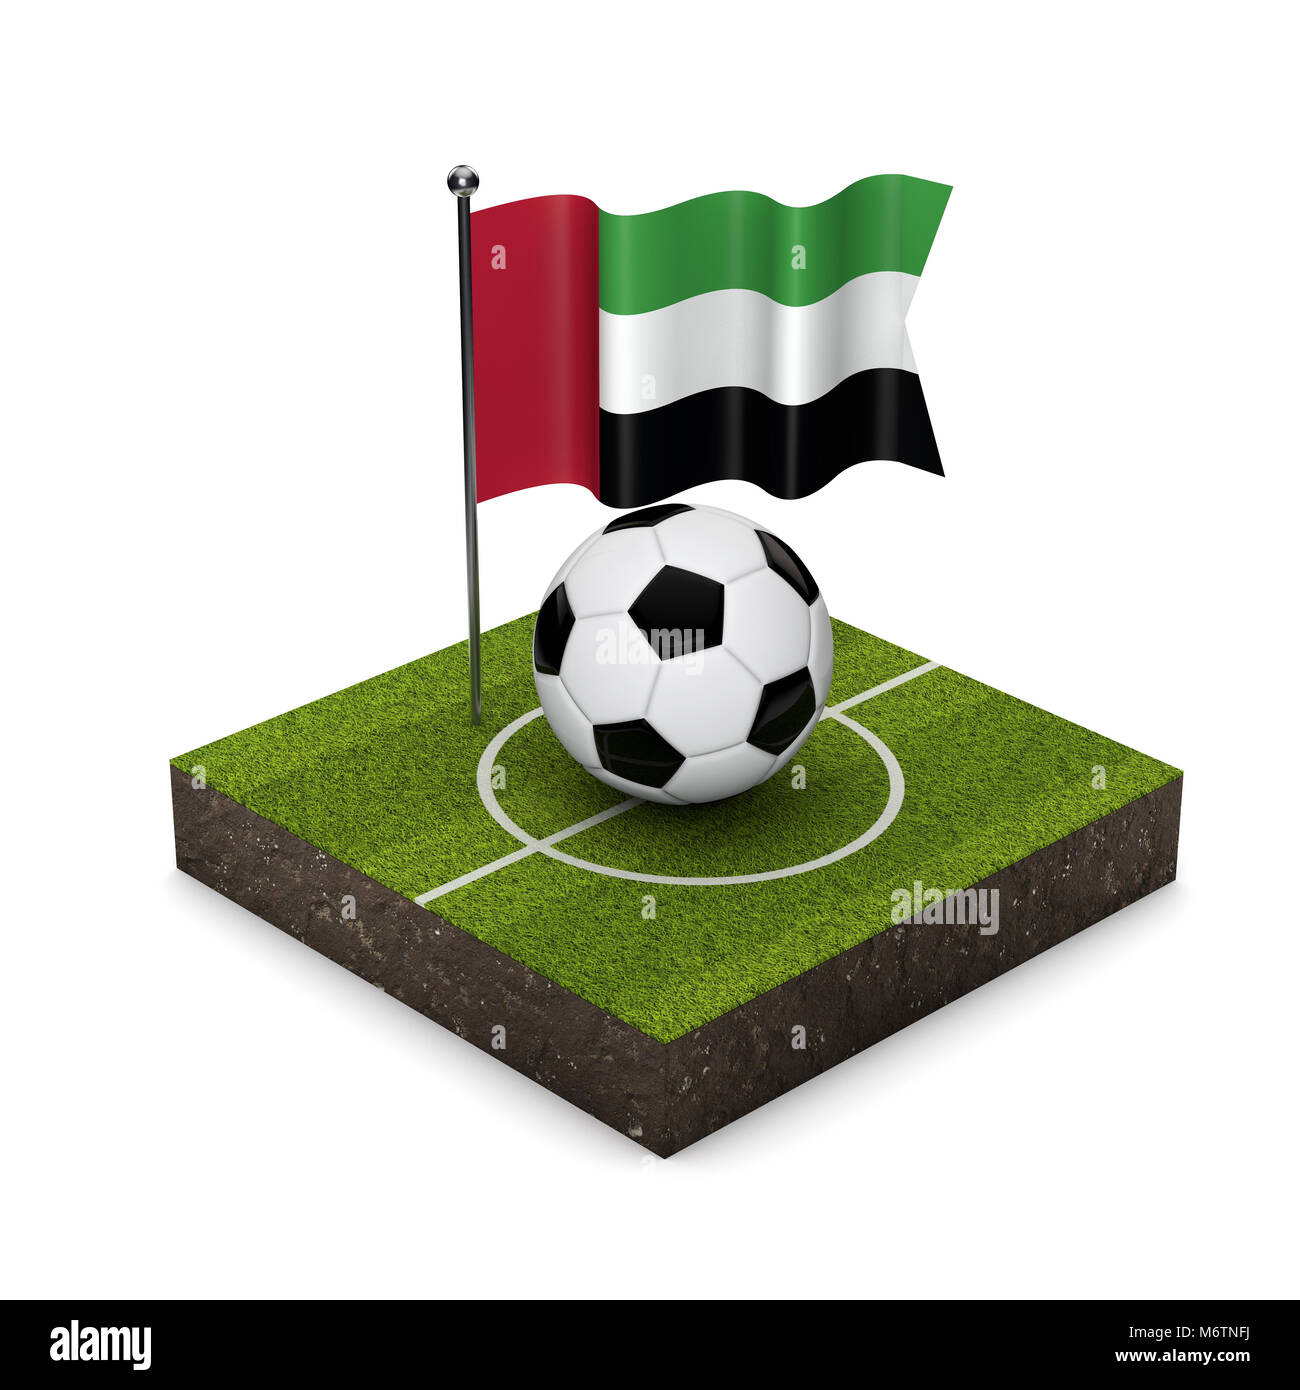 United Arab Emirates flag football concept. Flag, ball and soccer pitch isometric icon. 3D Rendering - Stock Image